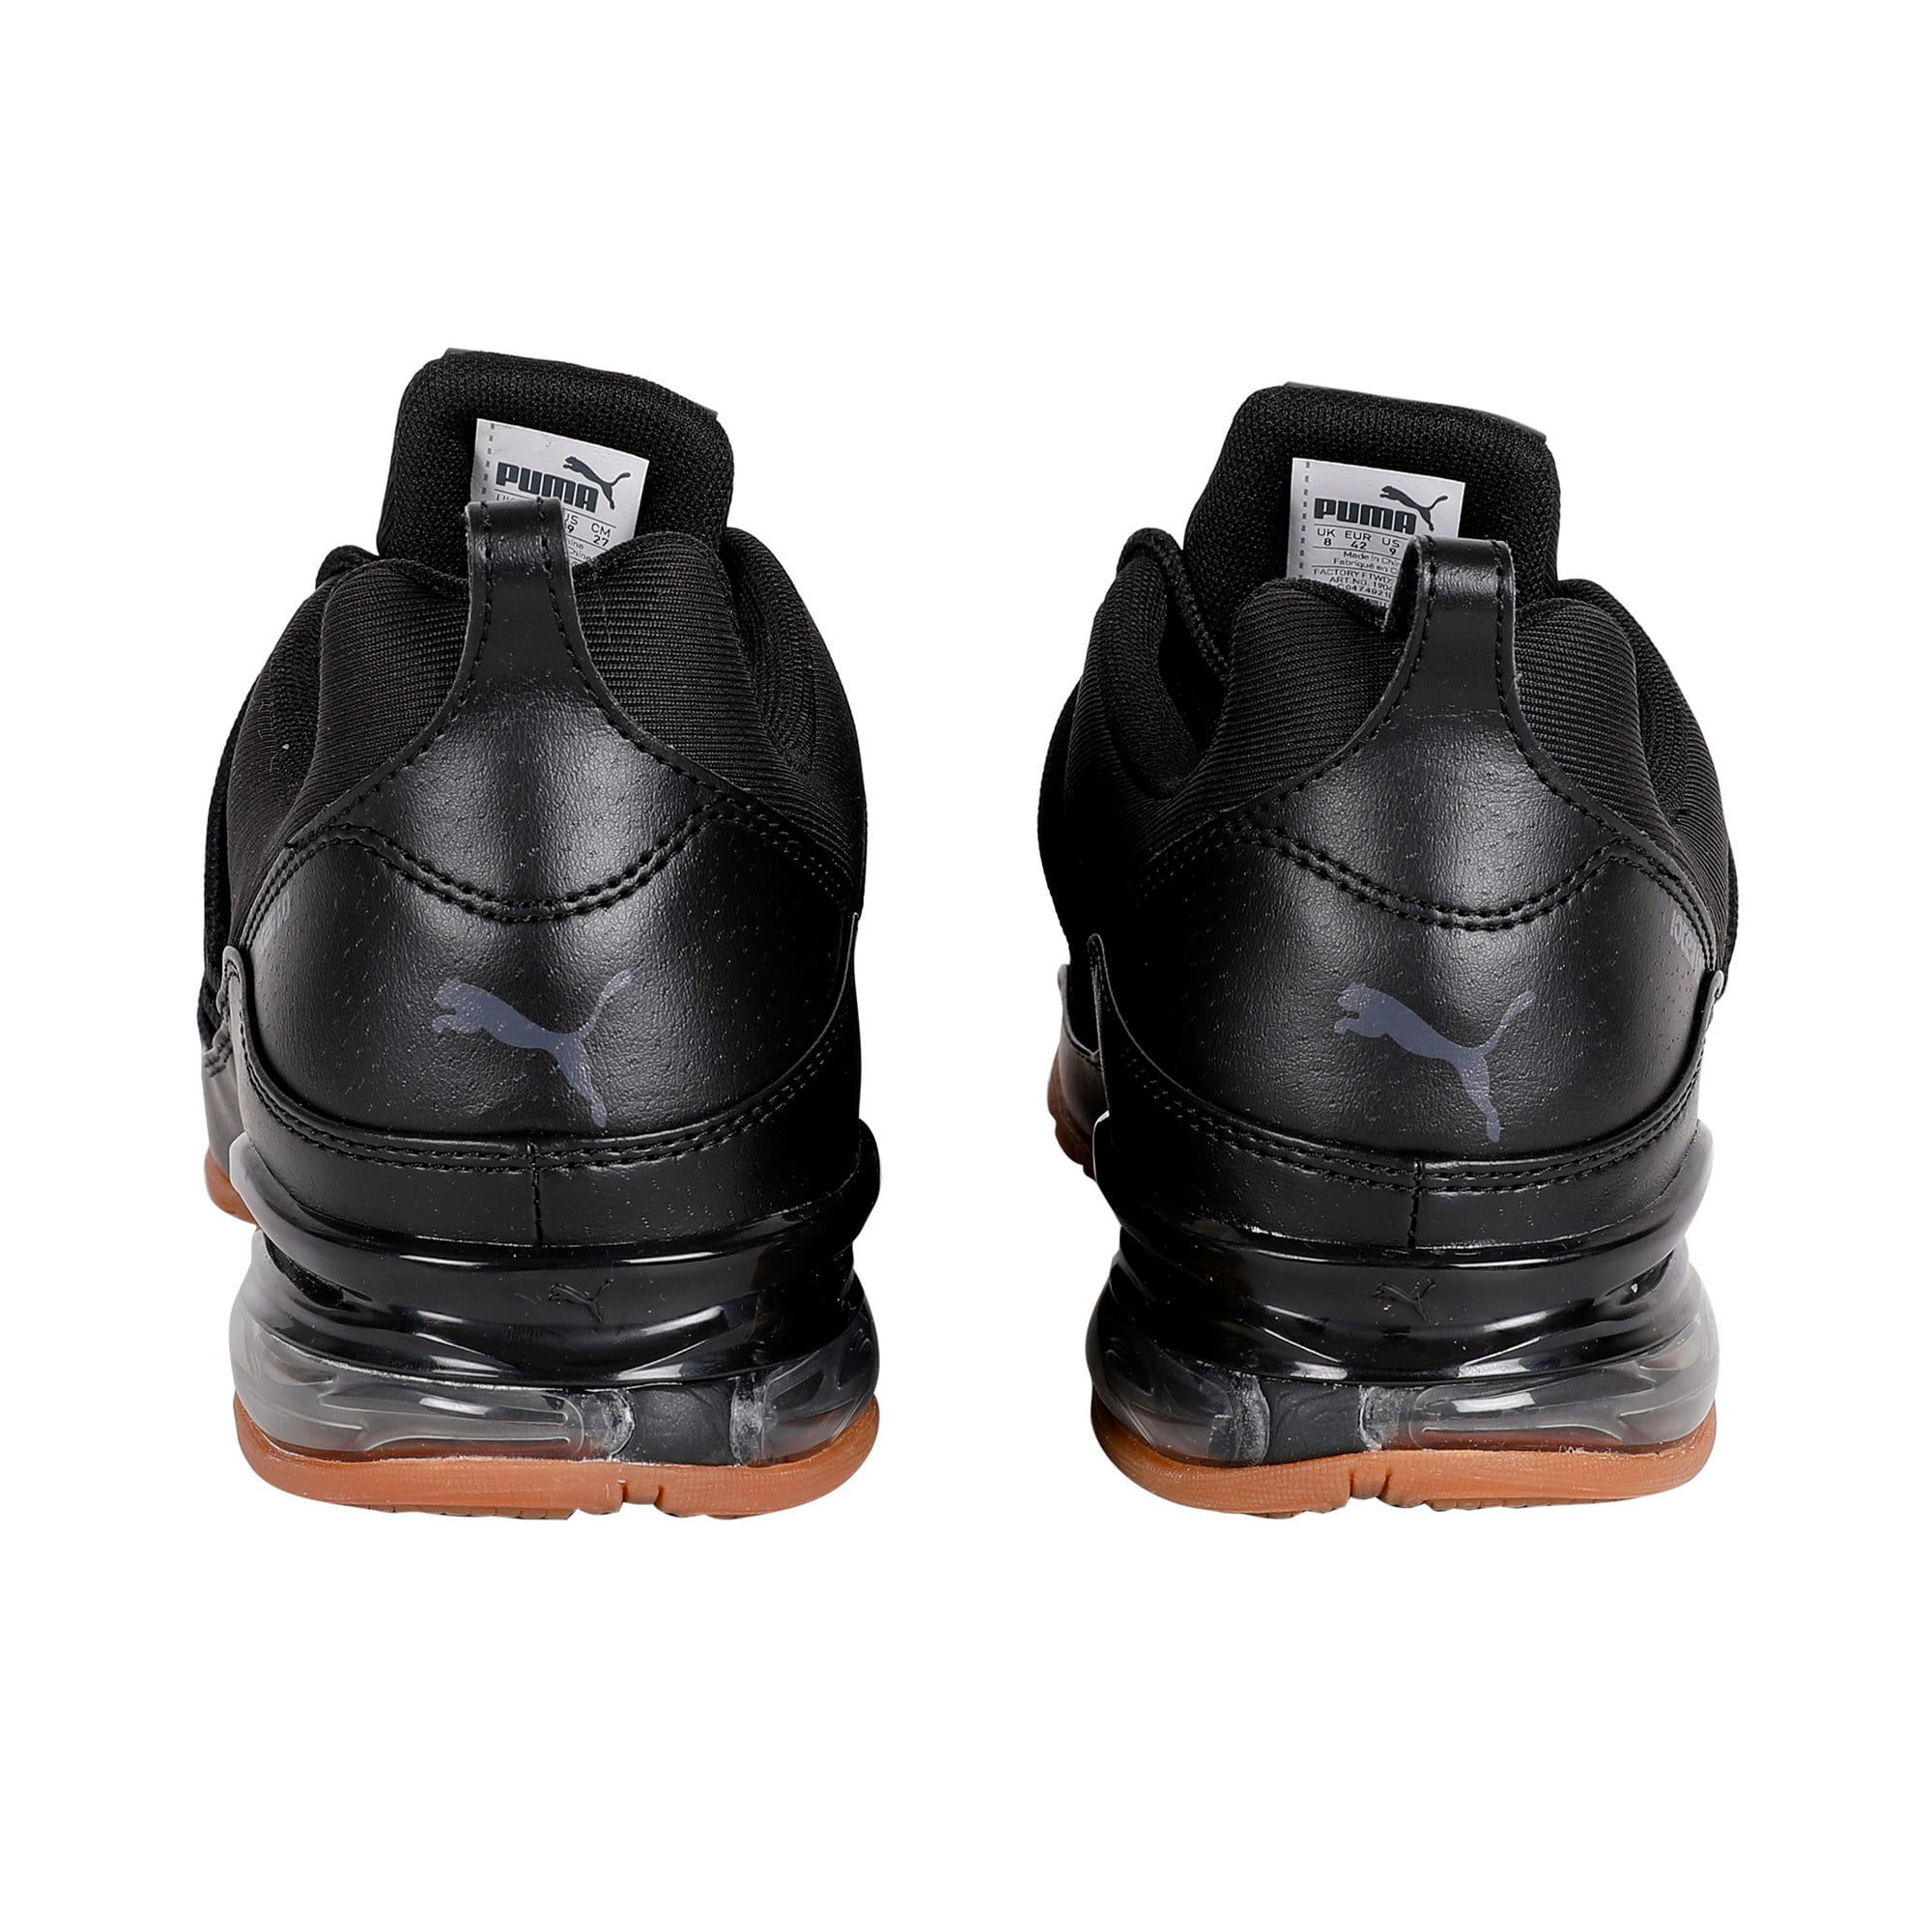 Thumbnail 3 of Cell Regulate Nature Tech Puma Black-Asp, Puma Black-Asphalt, medium-IND